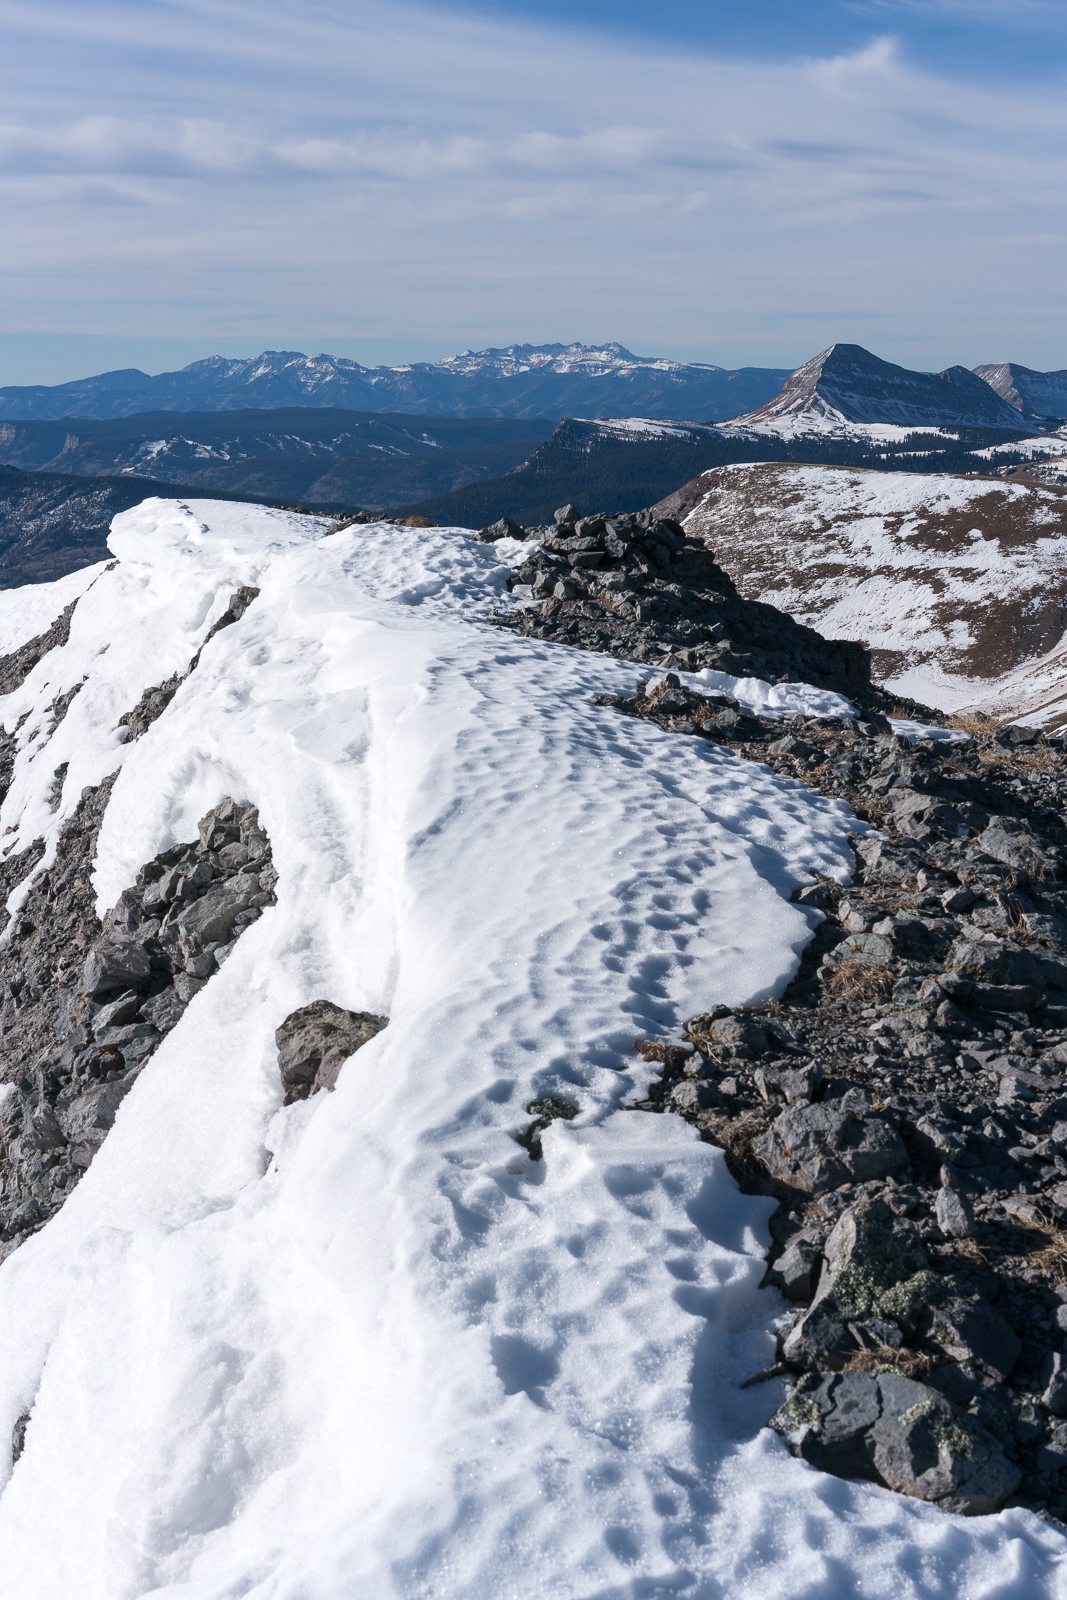 Spencer Peak summit